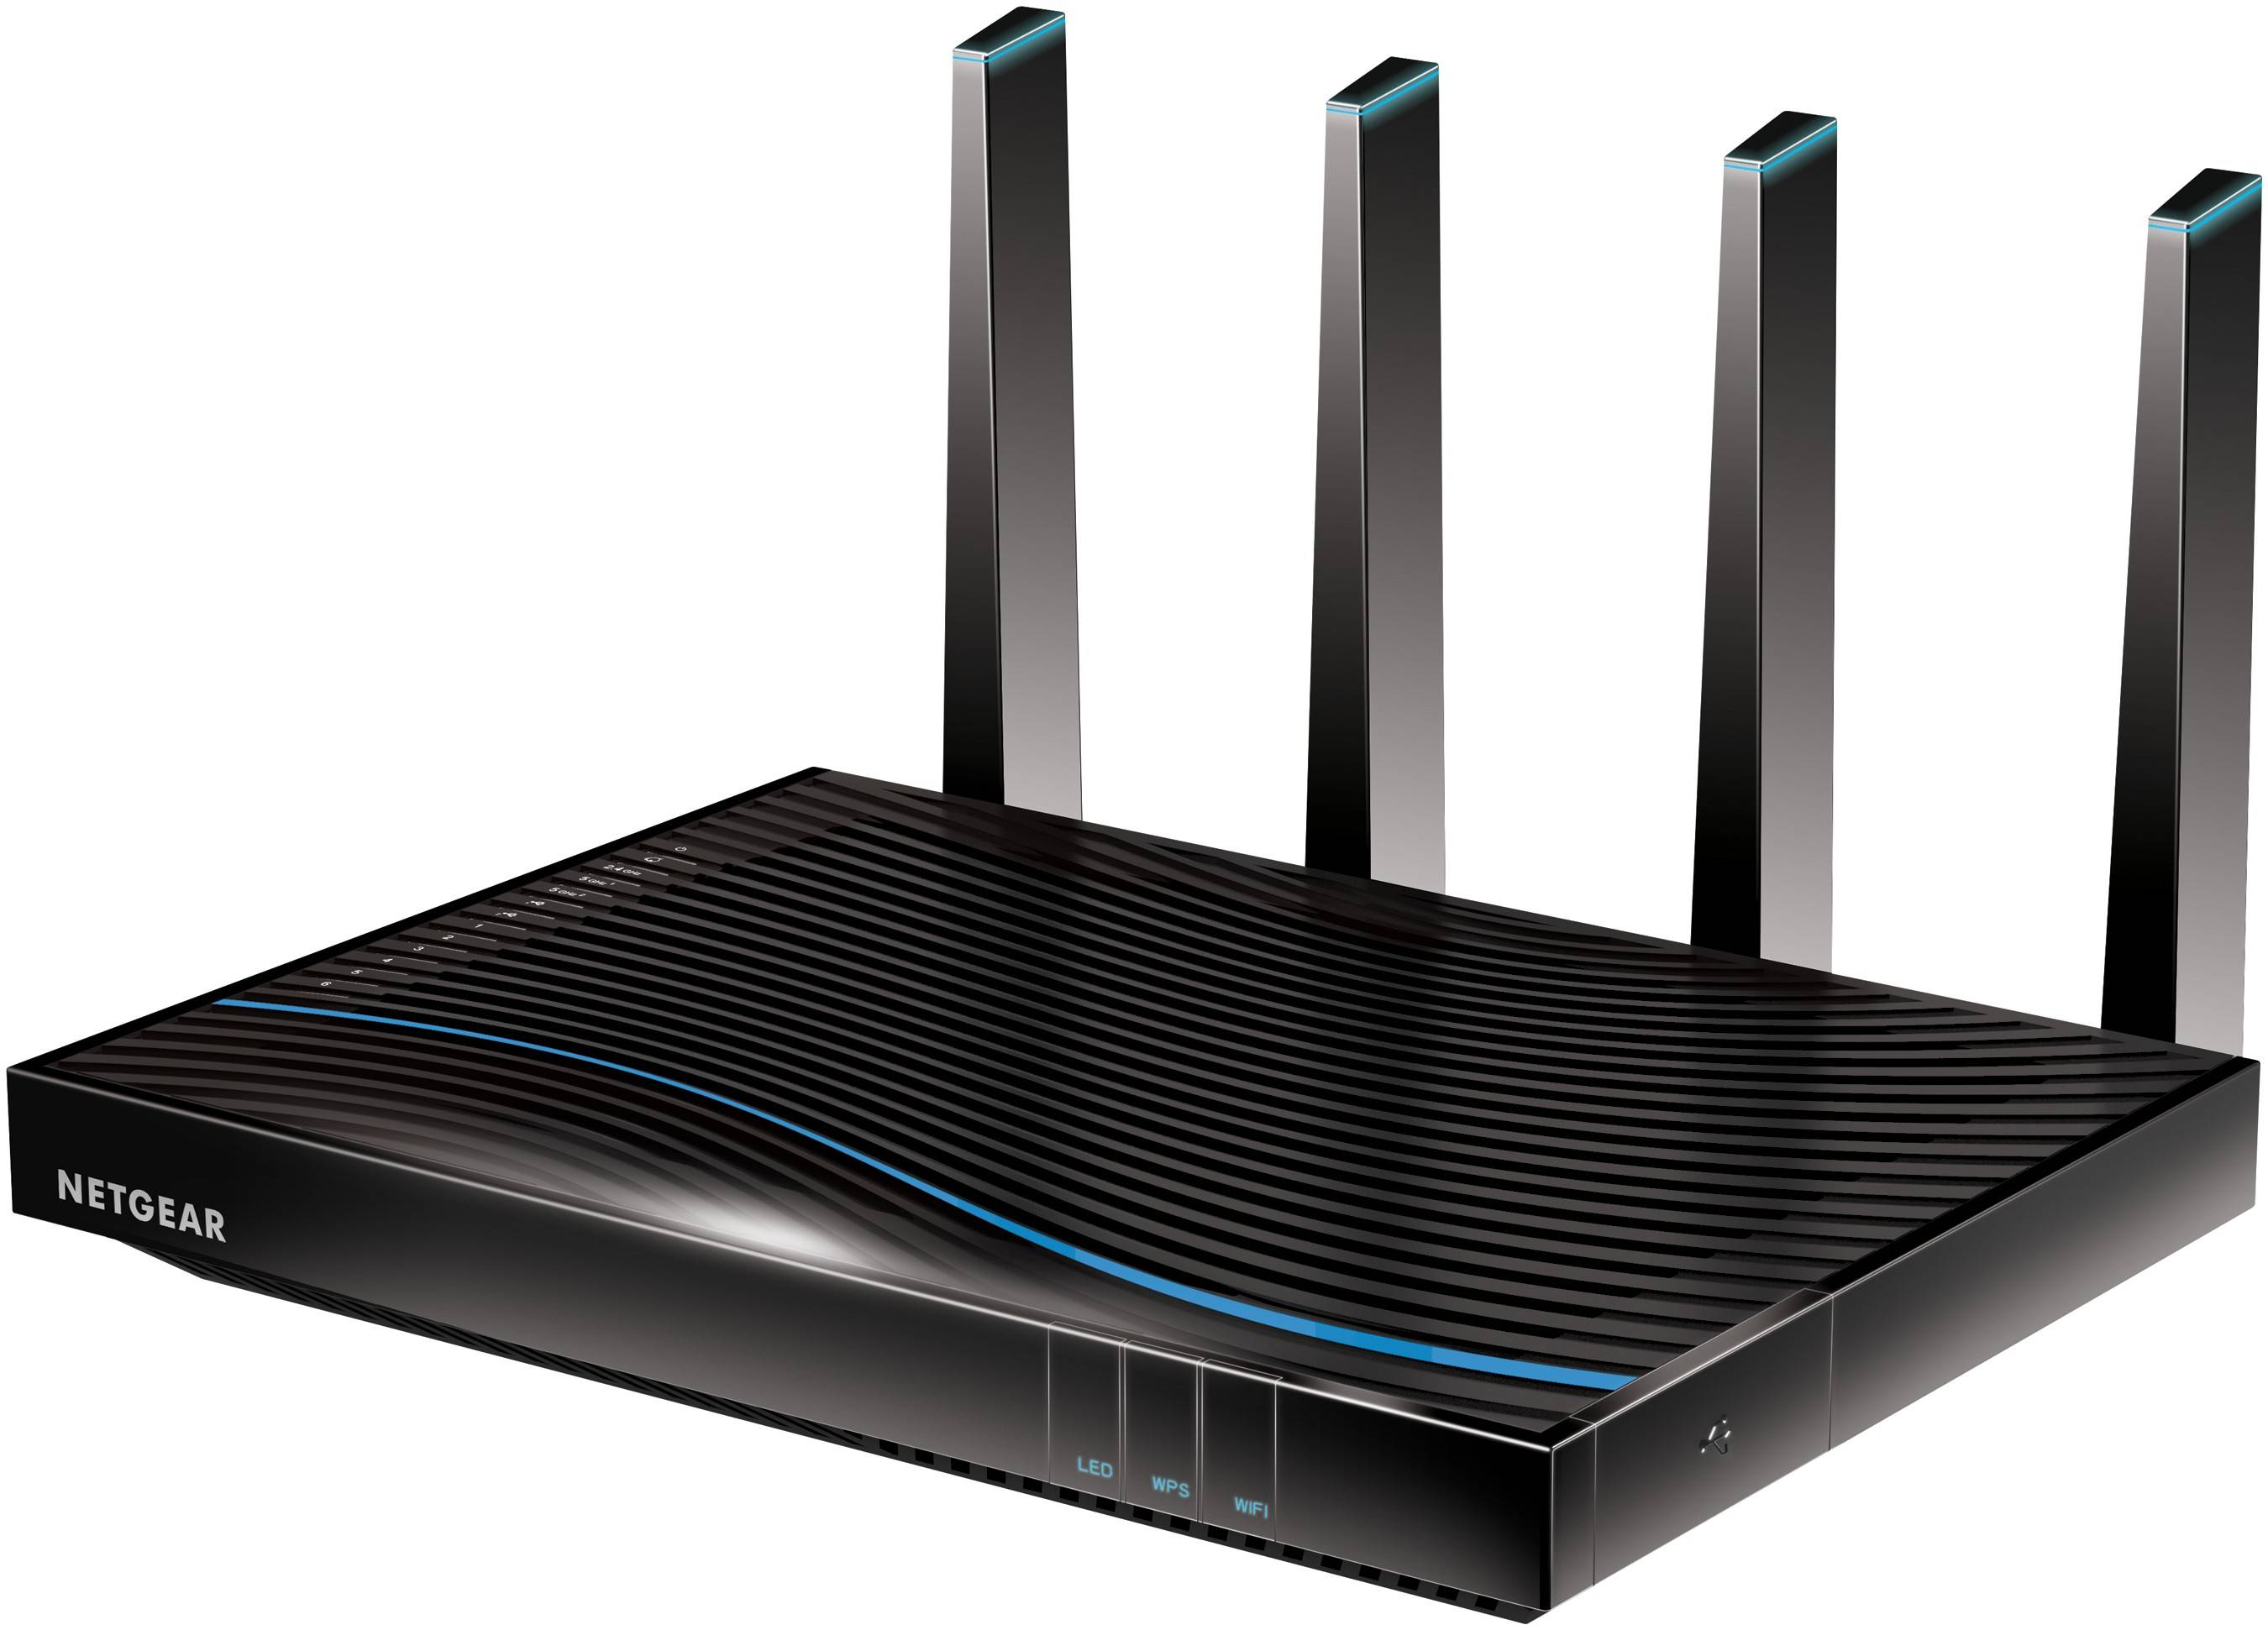 Netgear Nighthawk X8 AC5300 Tri-band WiFi reititin